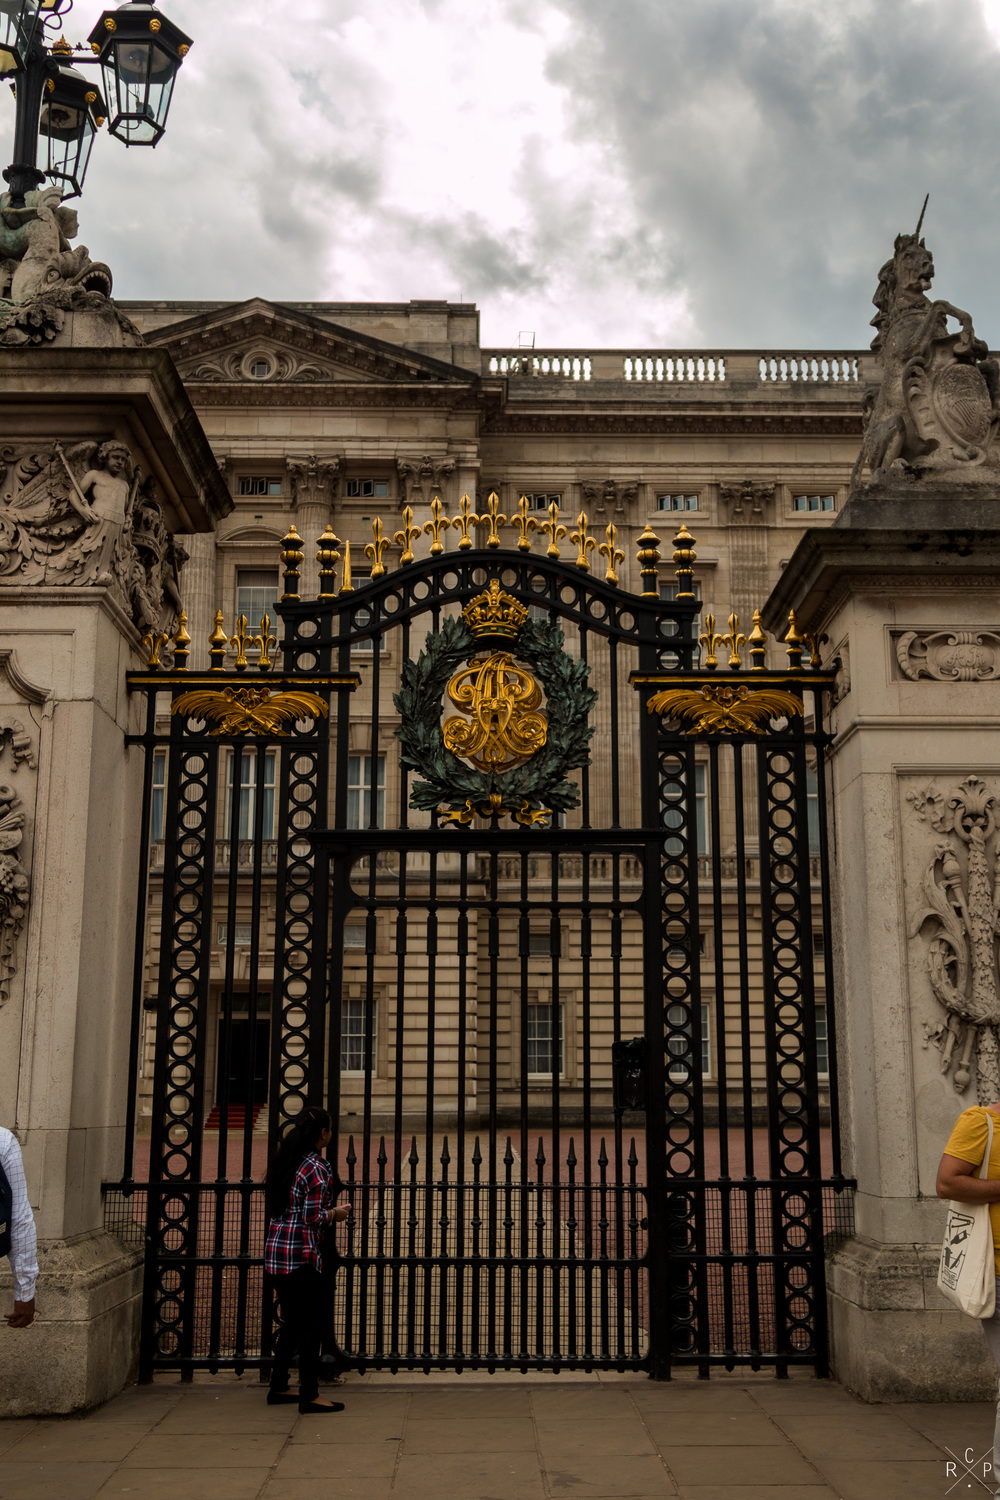 No Entry - Buckingham Palace, London, England 31/07/2016